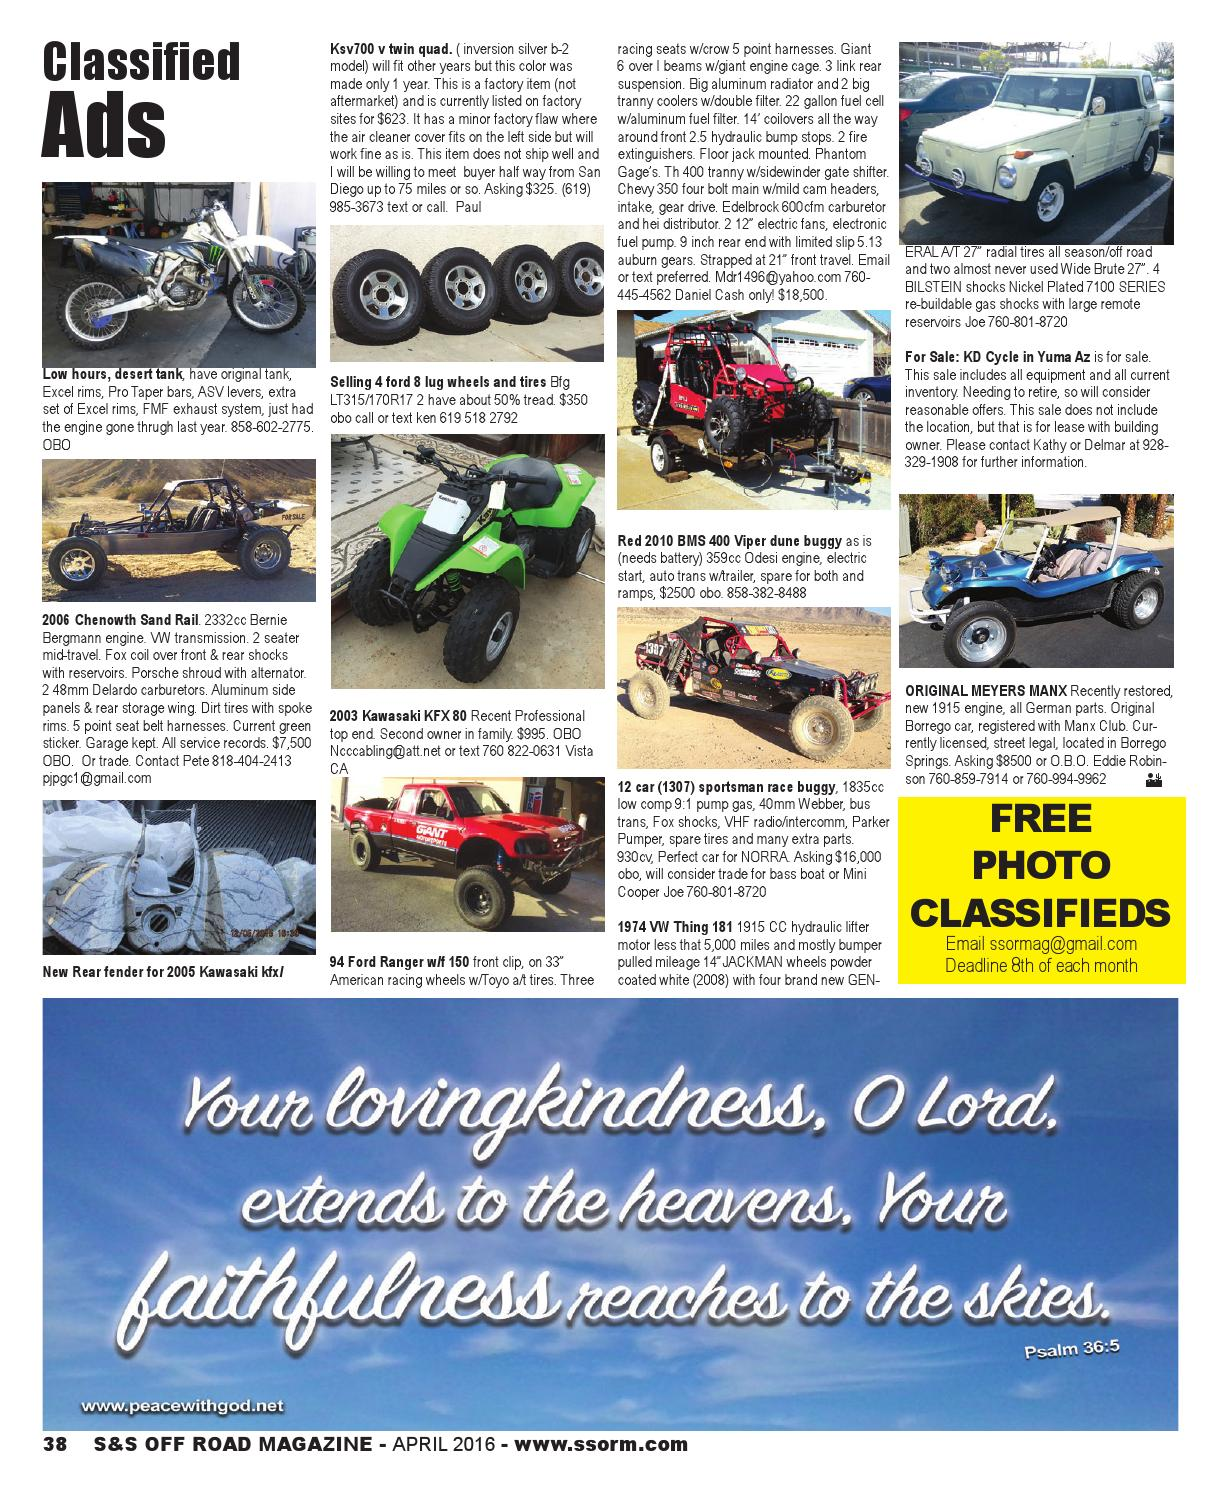 S&S Off Road Magazine April 2016 by S&S Off Road Magazine - issuu